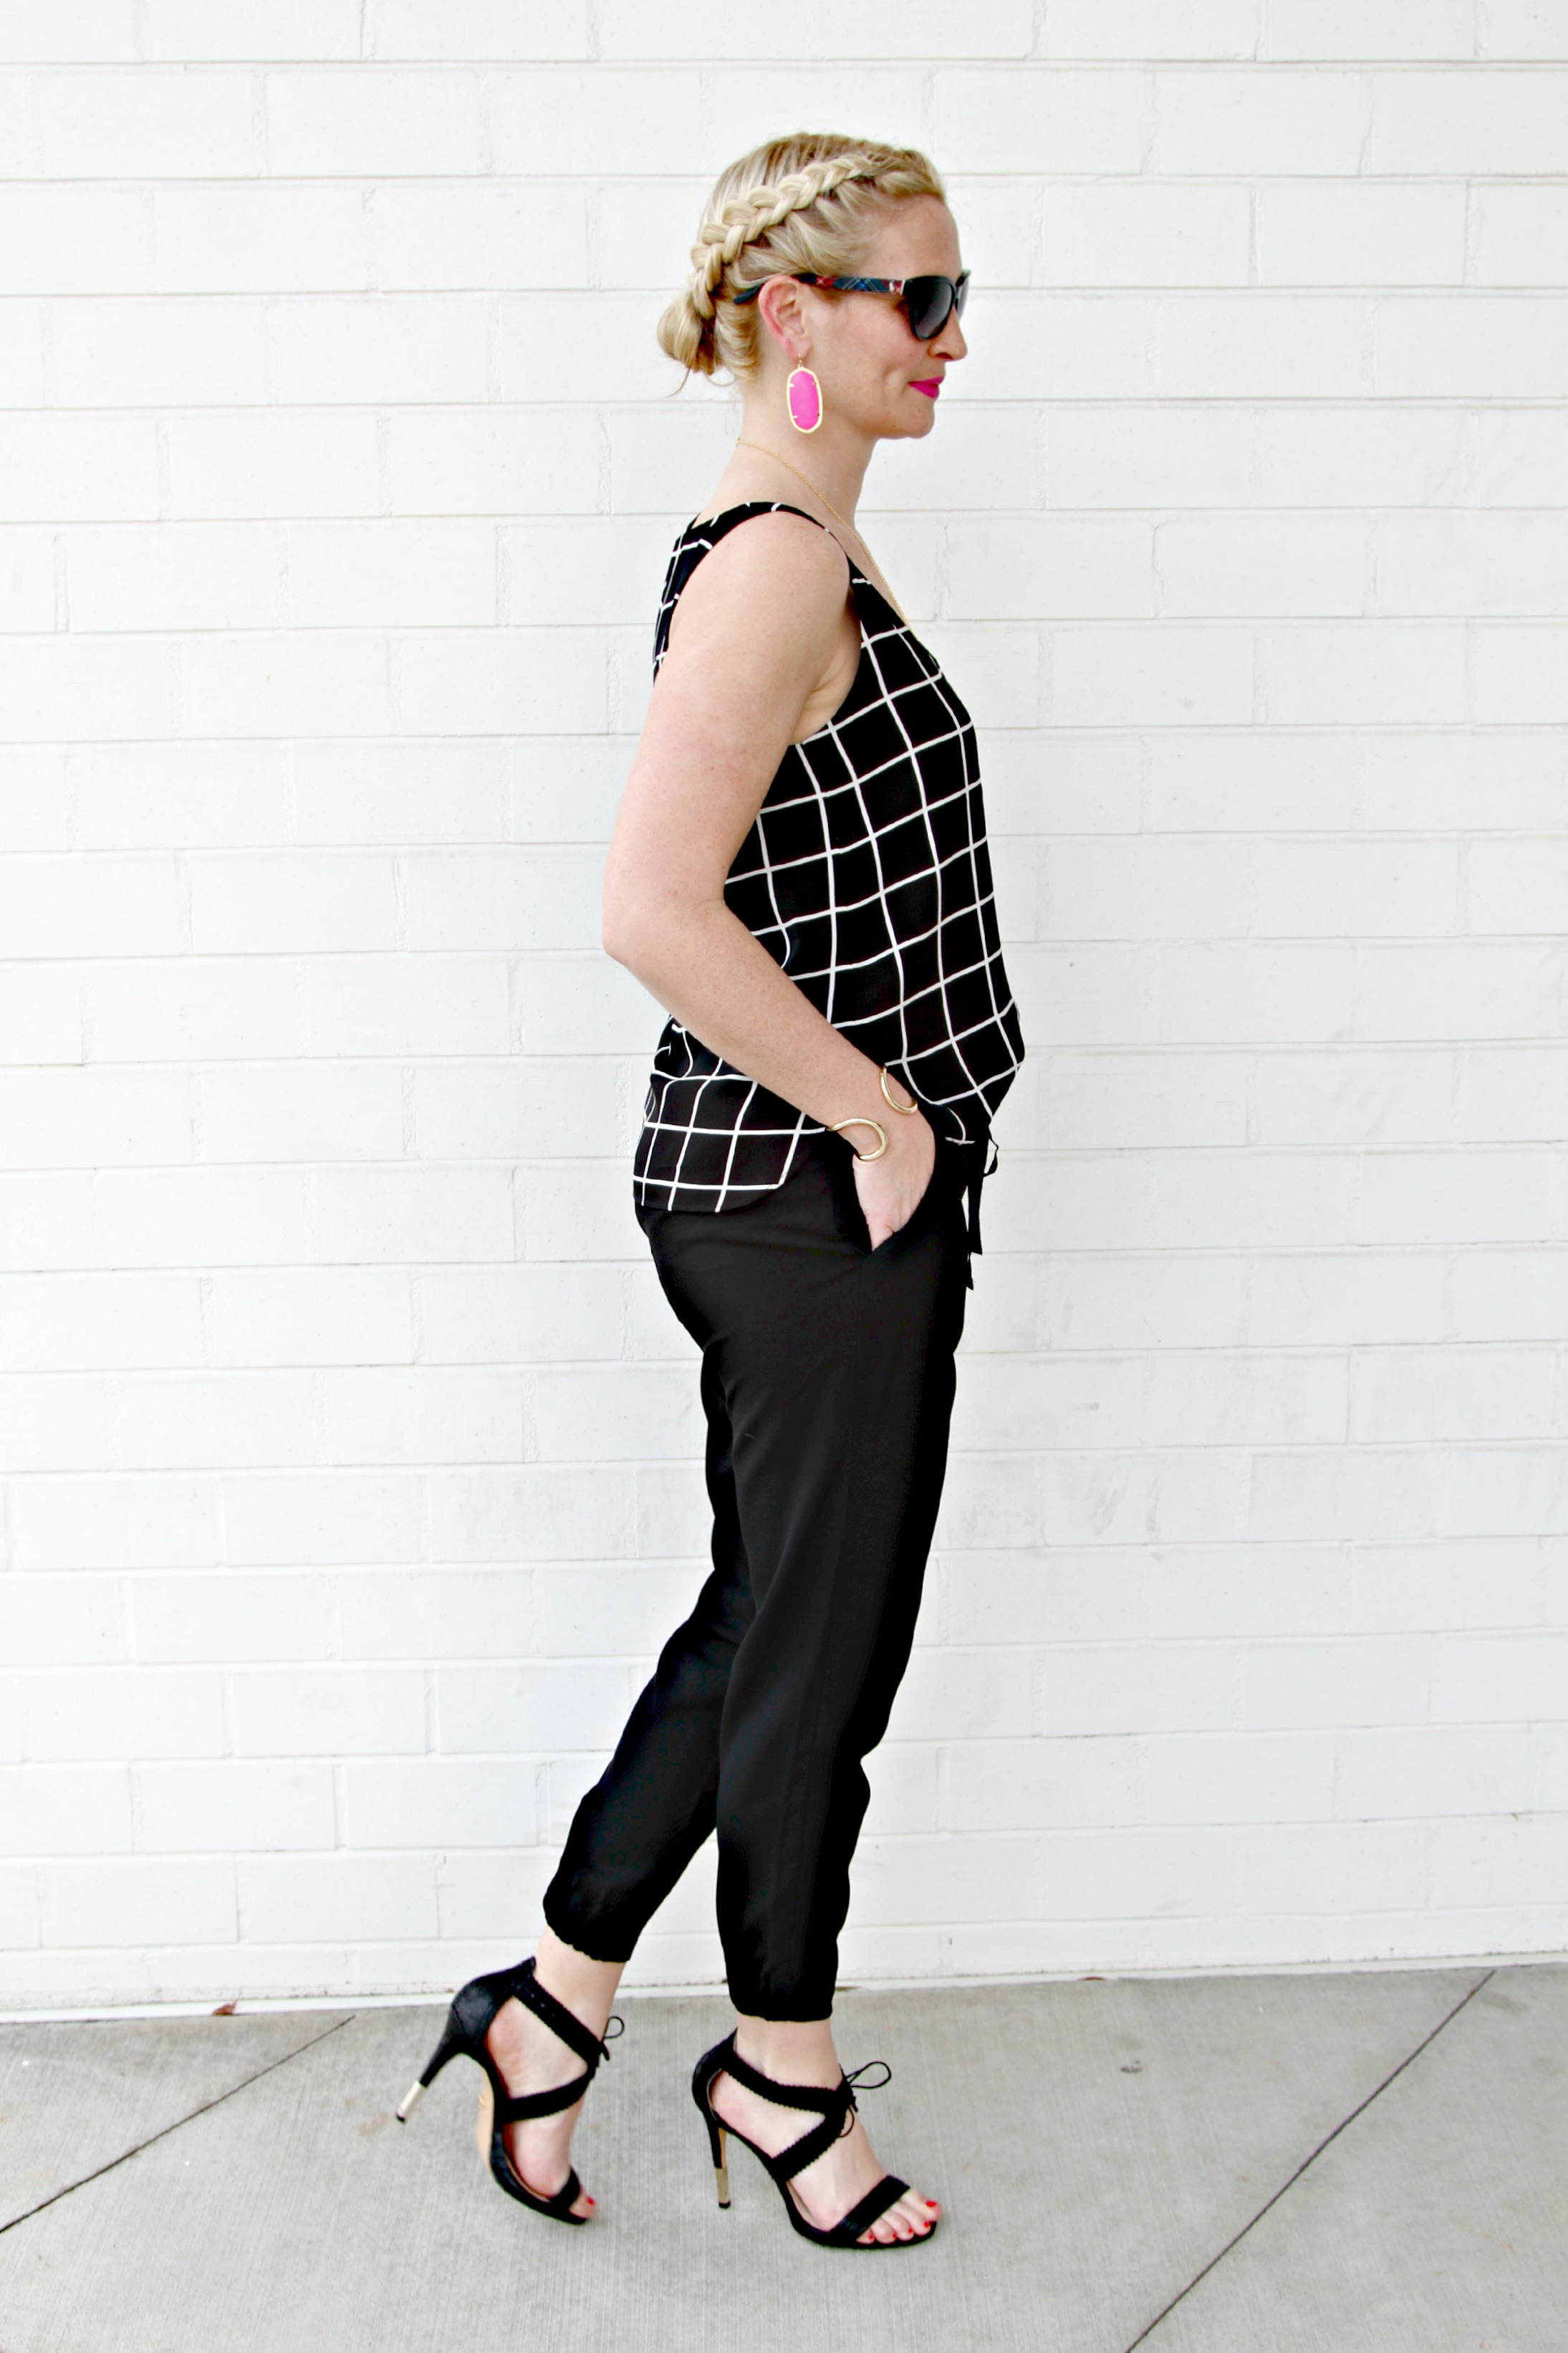 The Chic Series Black White And A Pop Of Hot Pink